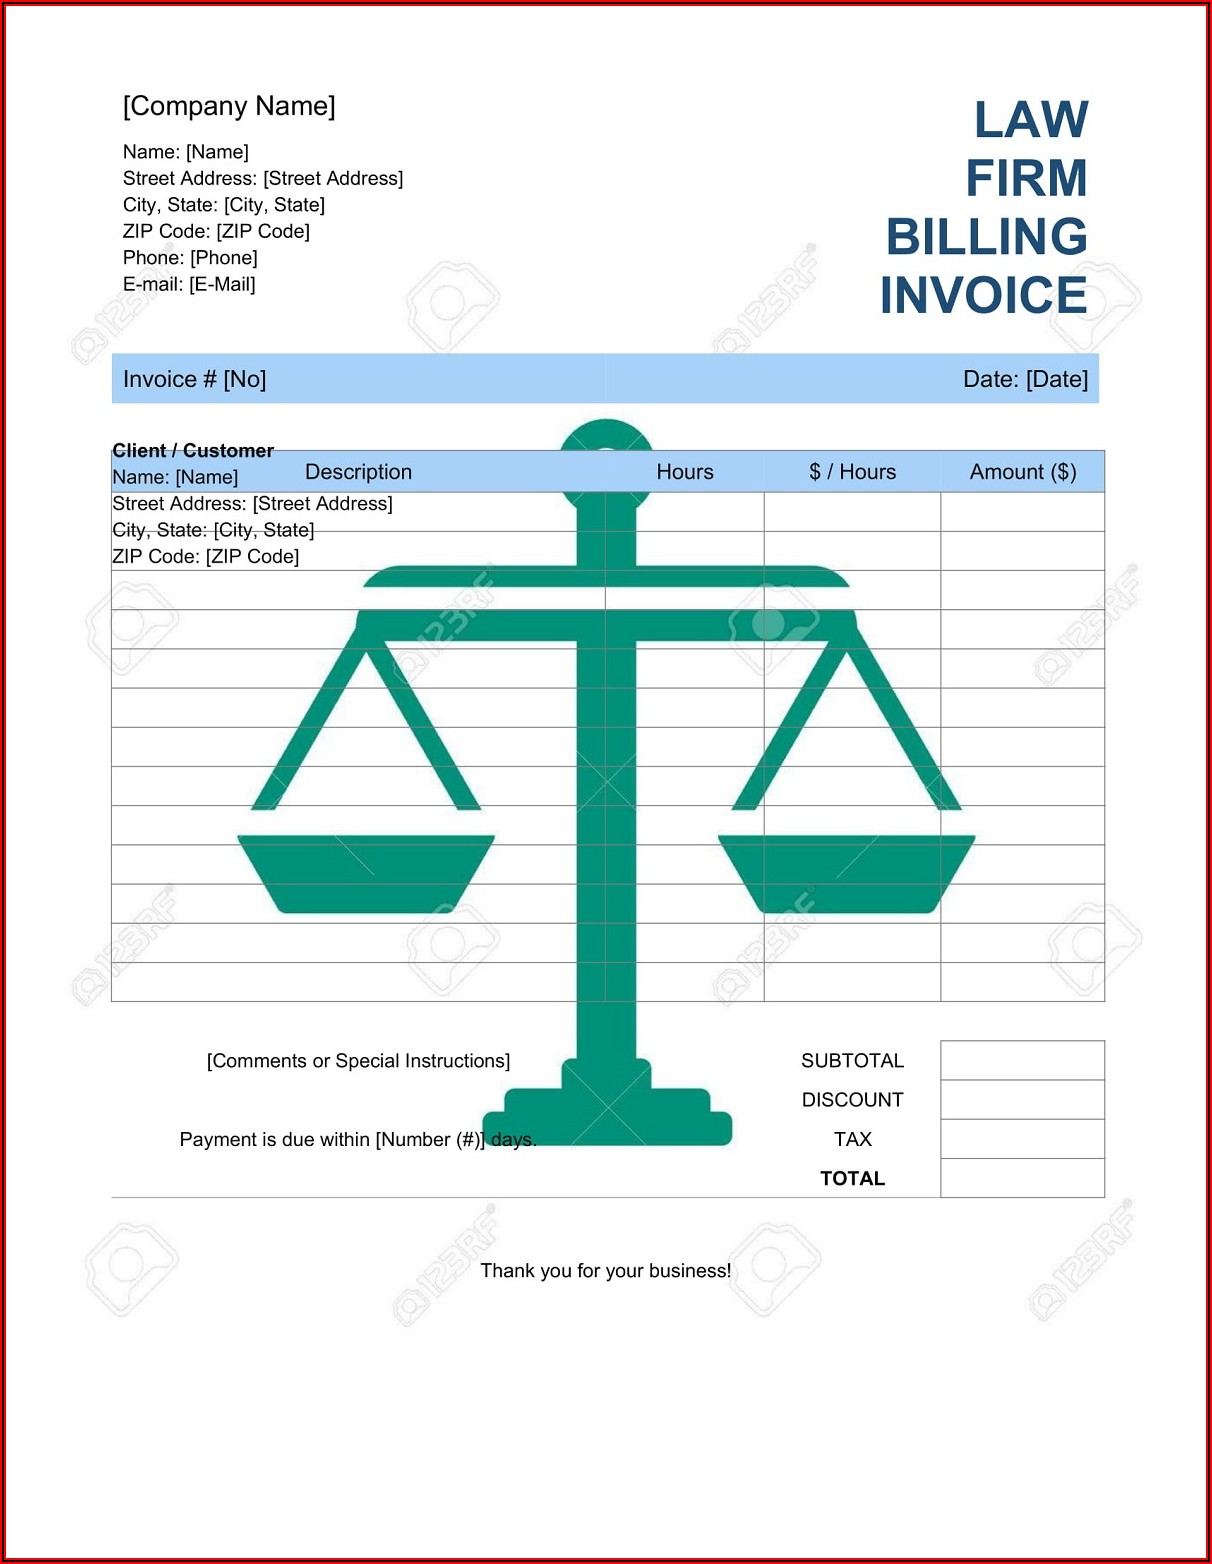 Law Firm Invoice Template Word